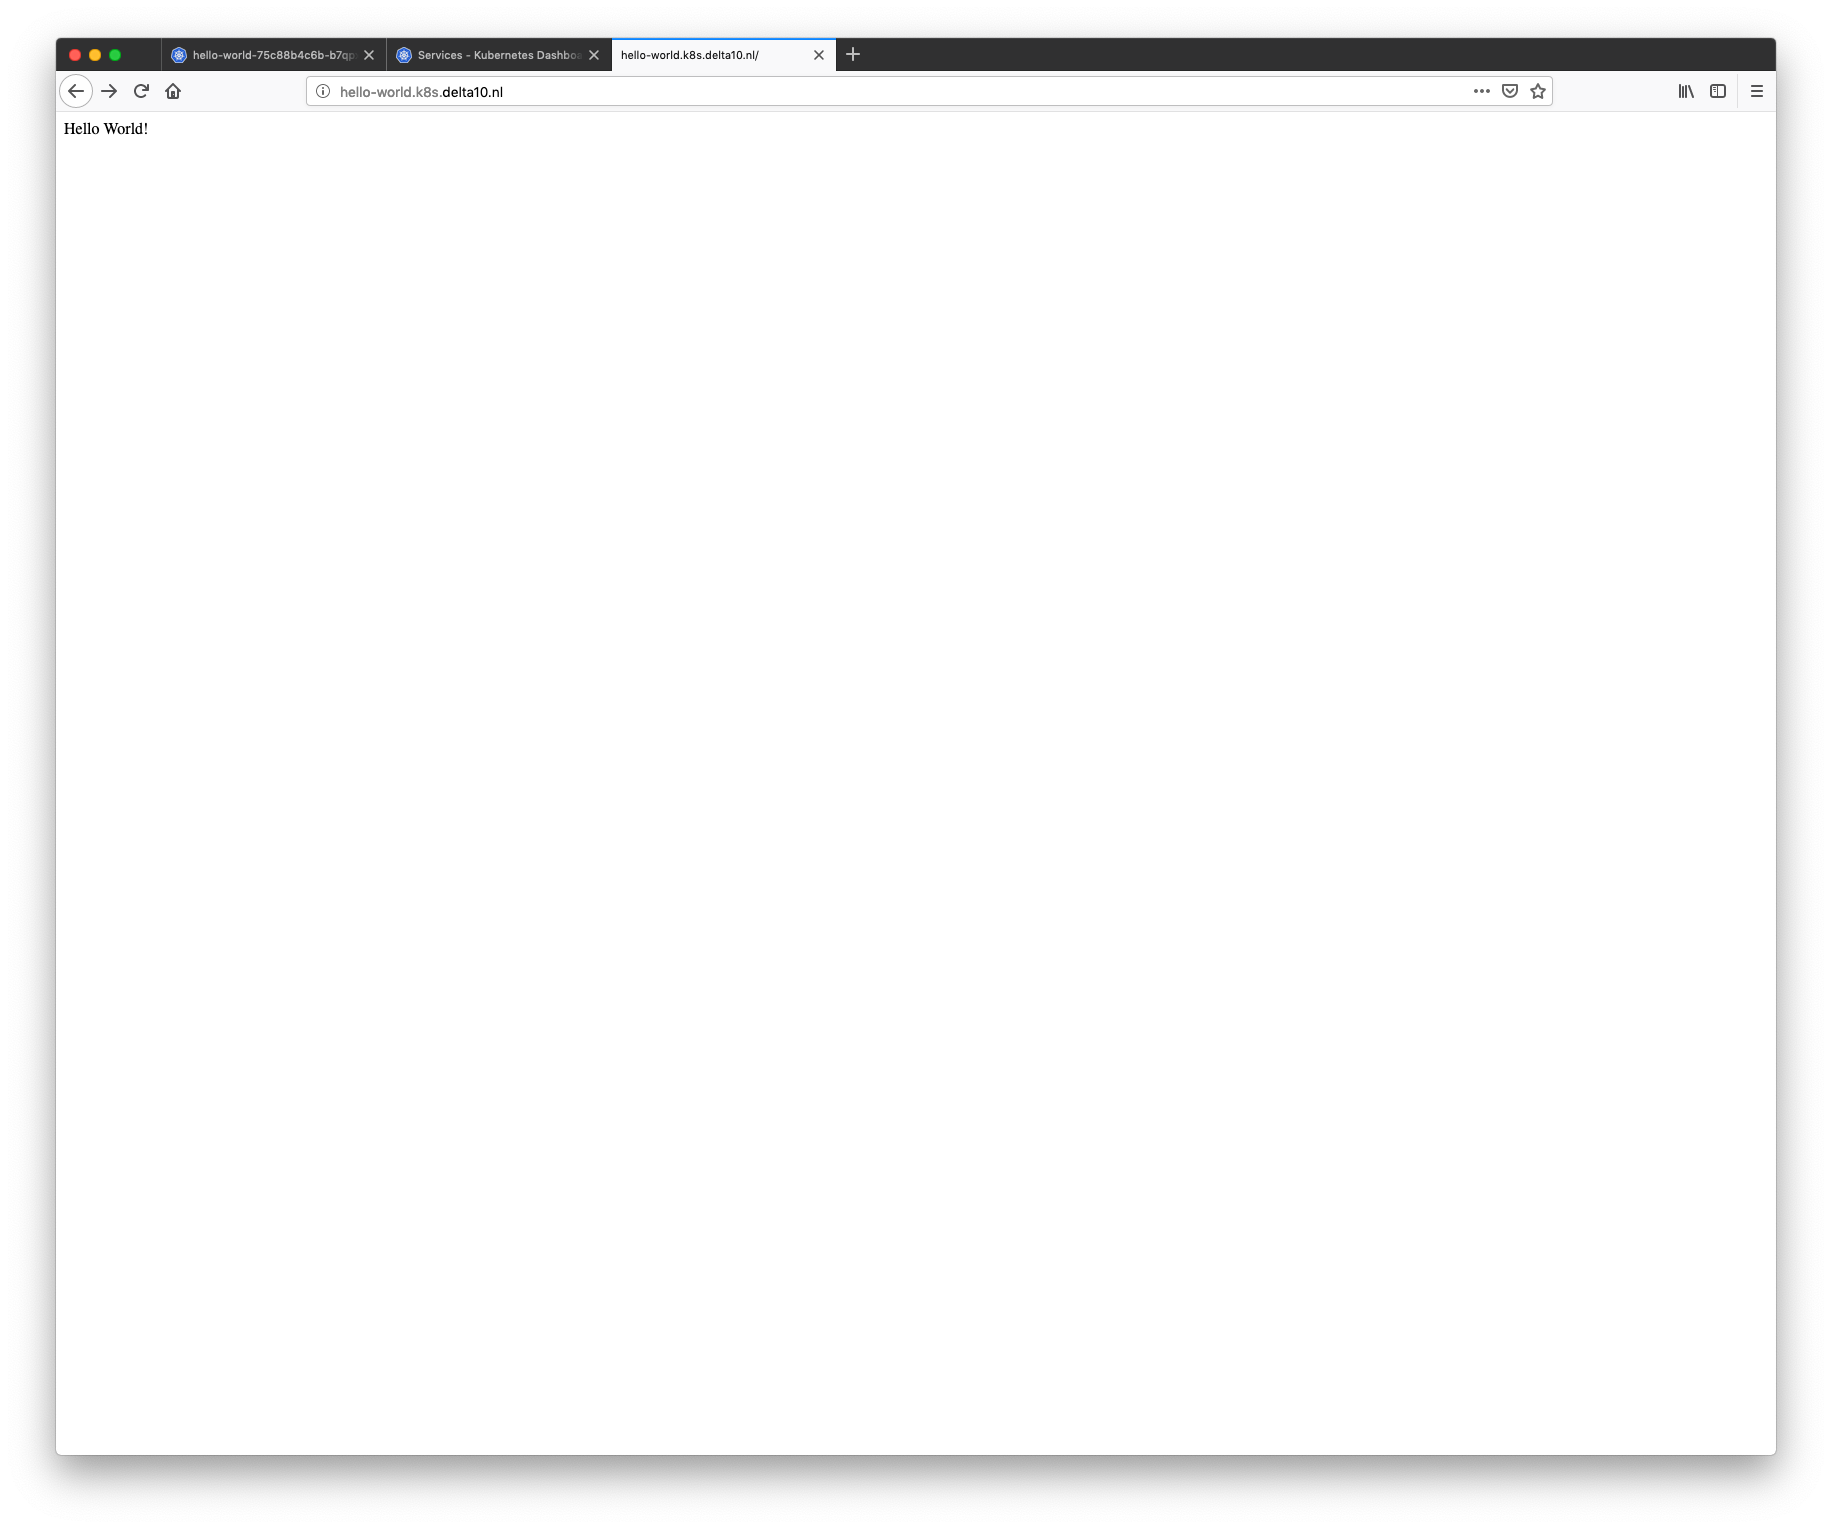 content/kubernetes/images/in-browser.png